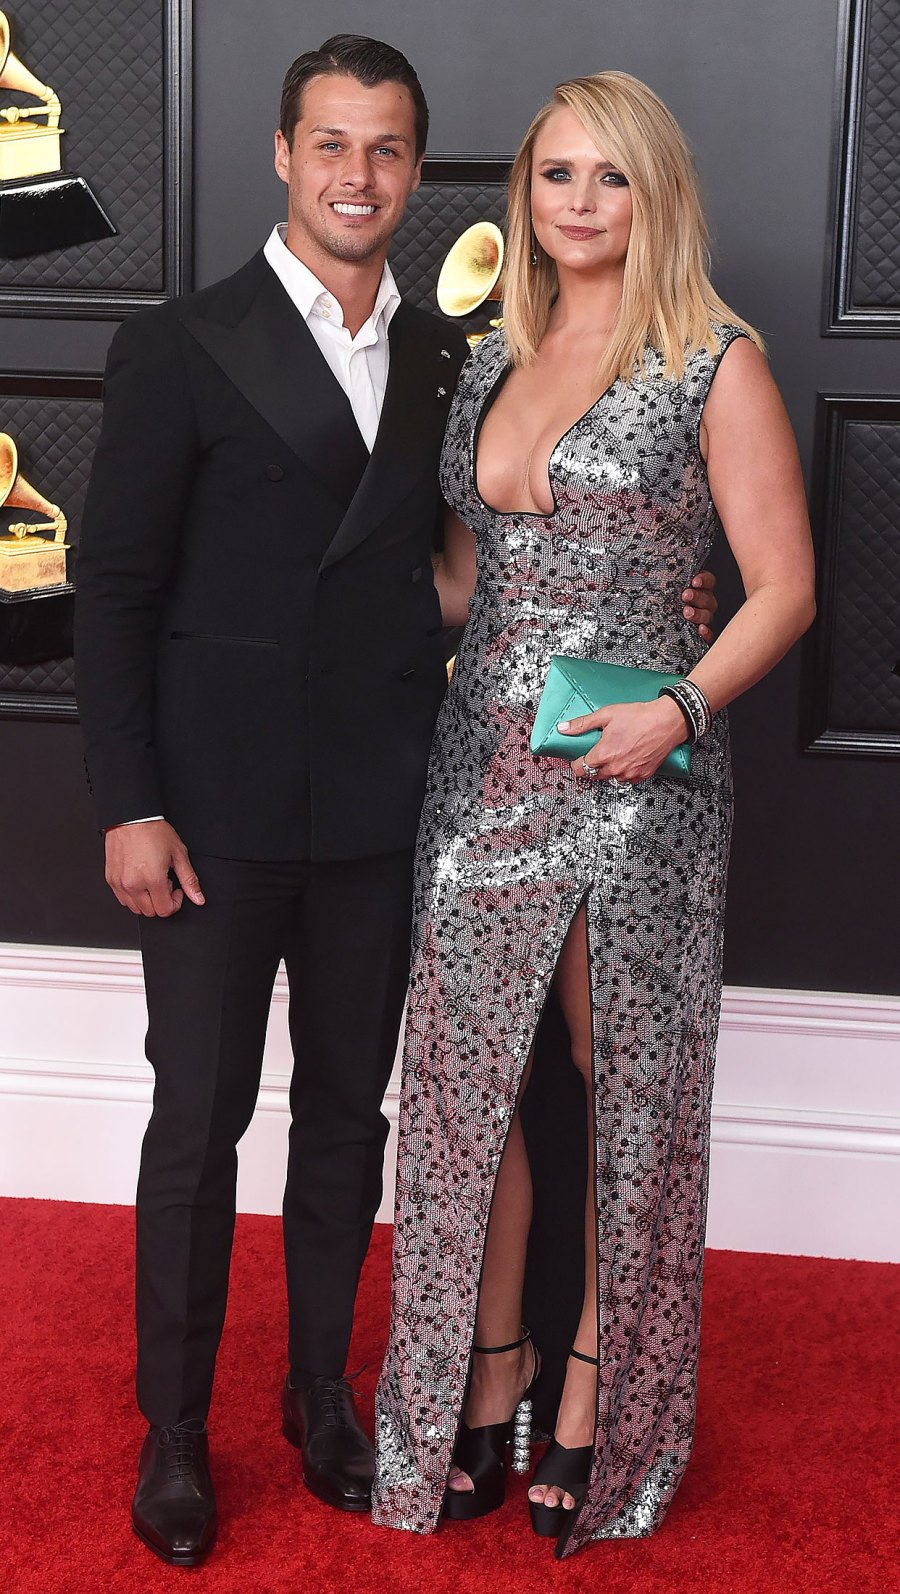 The TK Hottest Couples on the Grammys Red Carpet